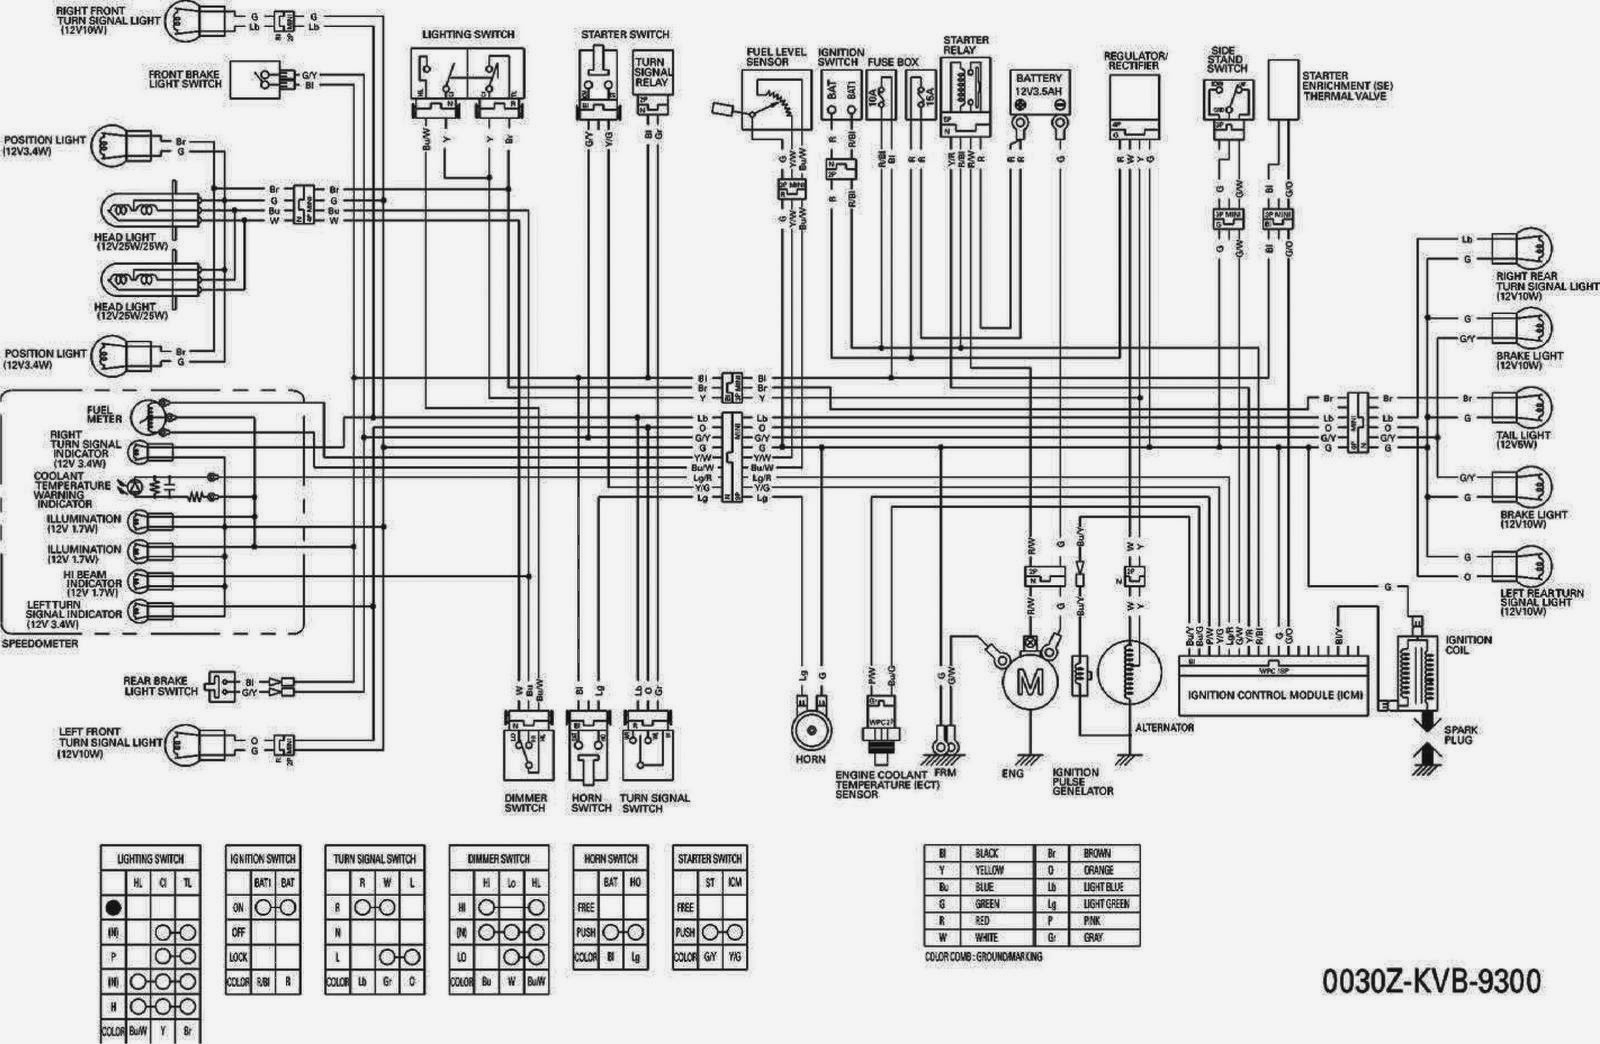 1972 xl250 wiring diagram